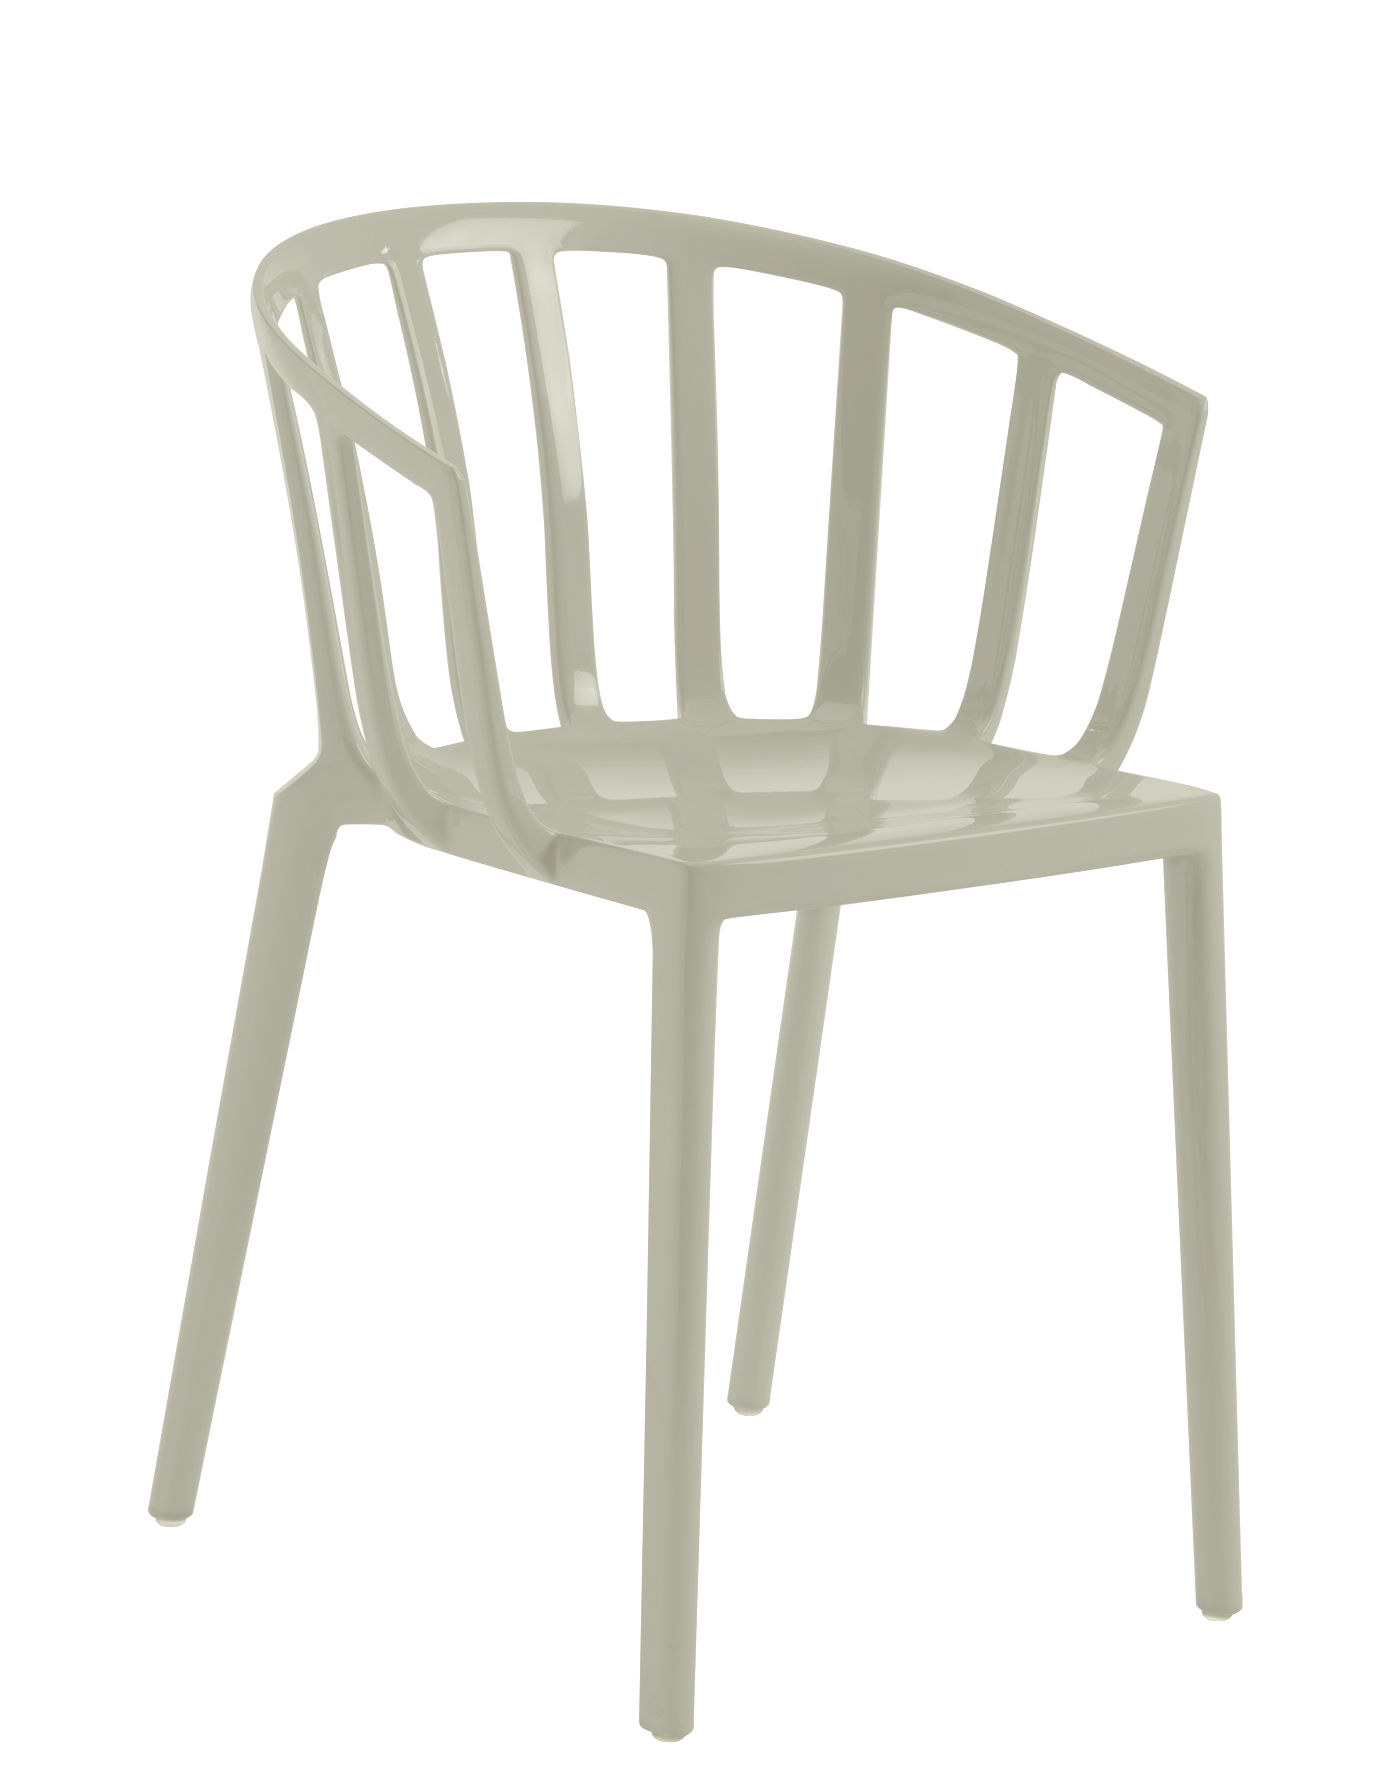 Furniture - Chairs - Generic AC Venice Stackable armchair - / Polycarbonate by Kartell - Grey - Polycarbonate